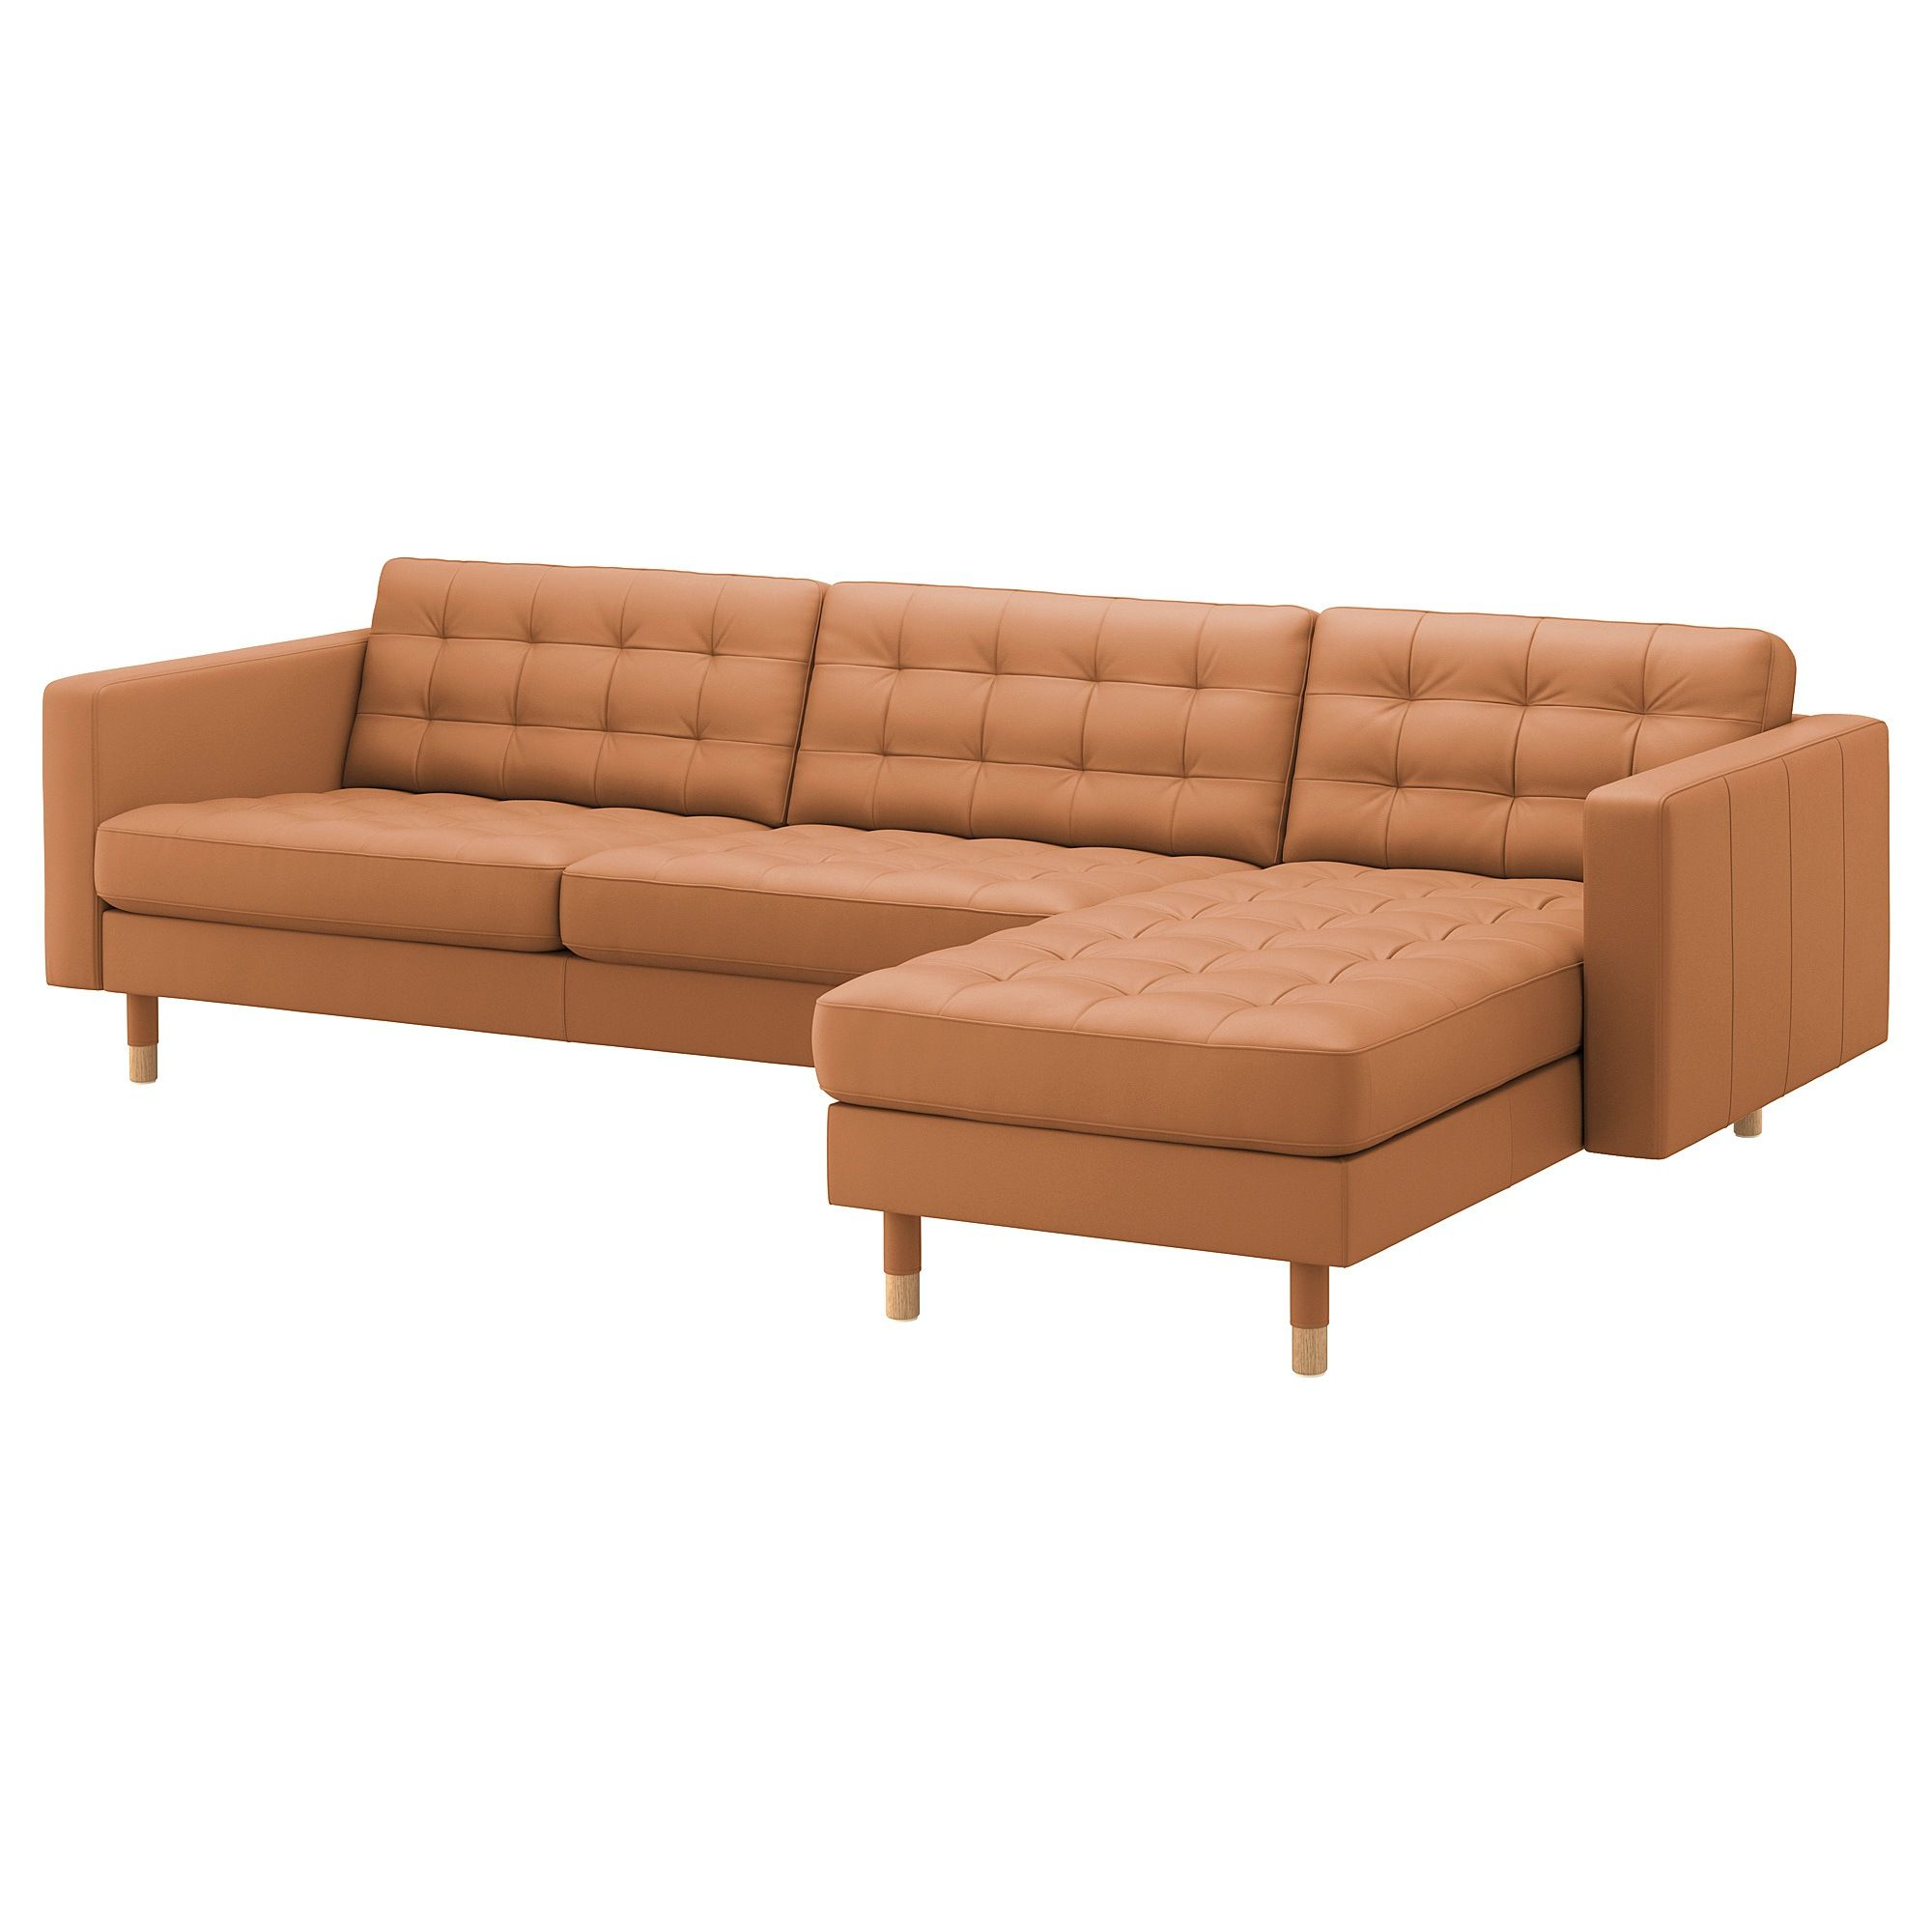 landskrona sectional 4 seat with chaise grann bomstad golden rh pinterest com